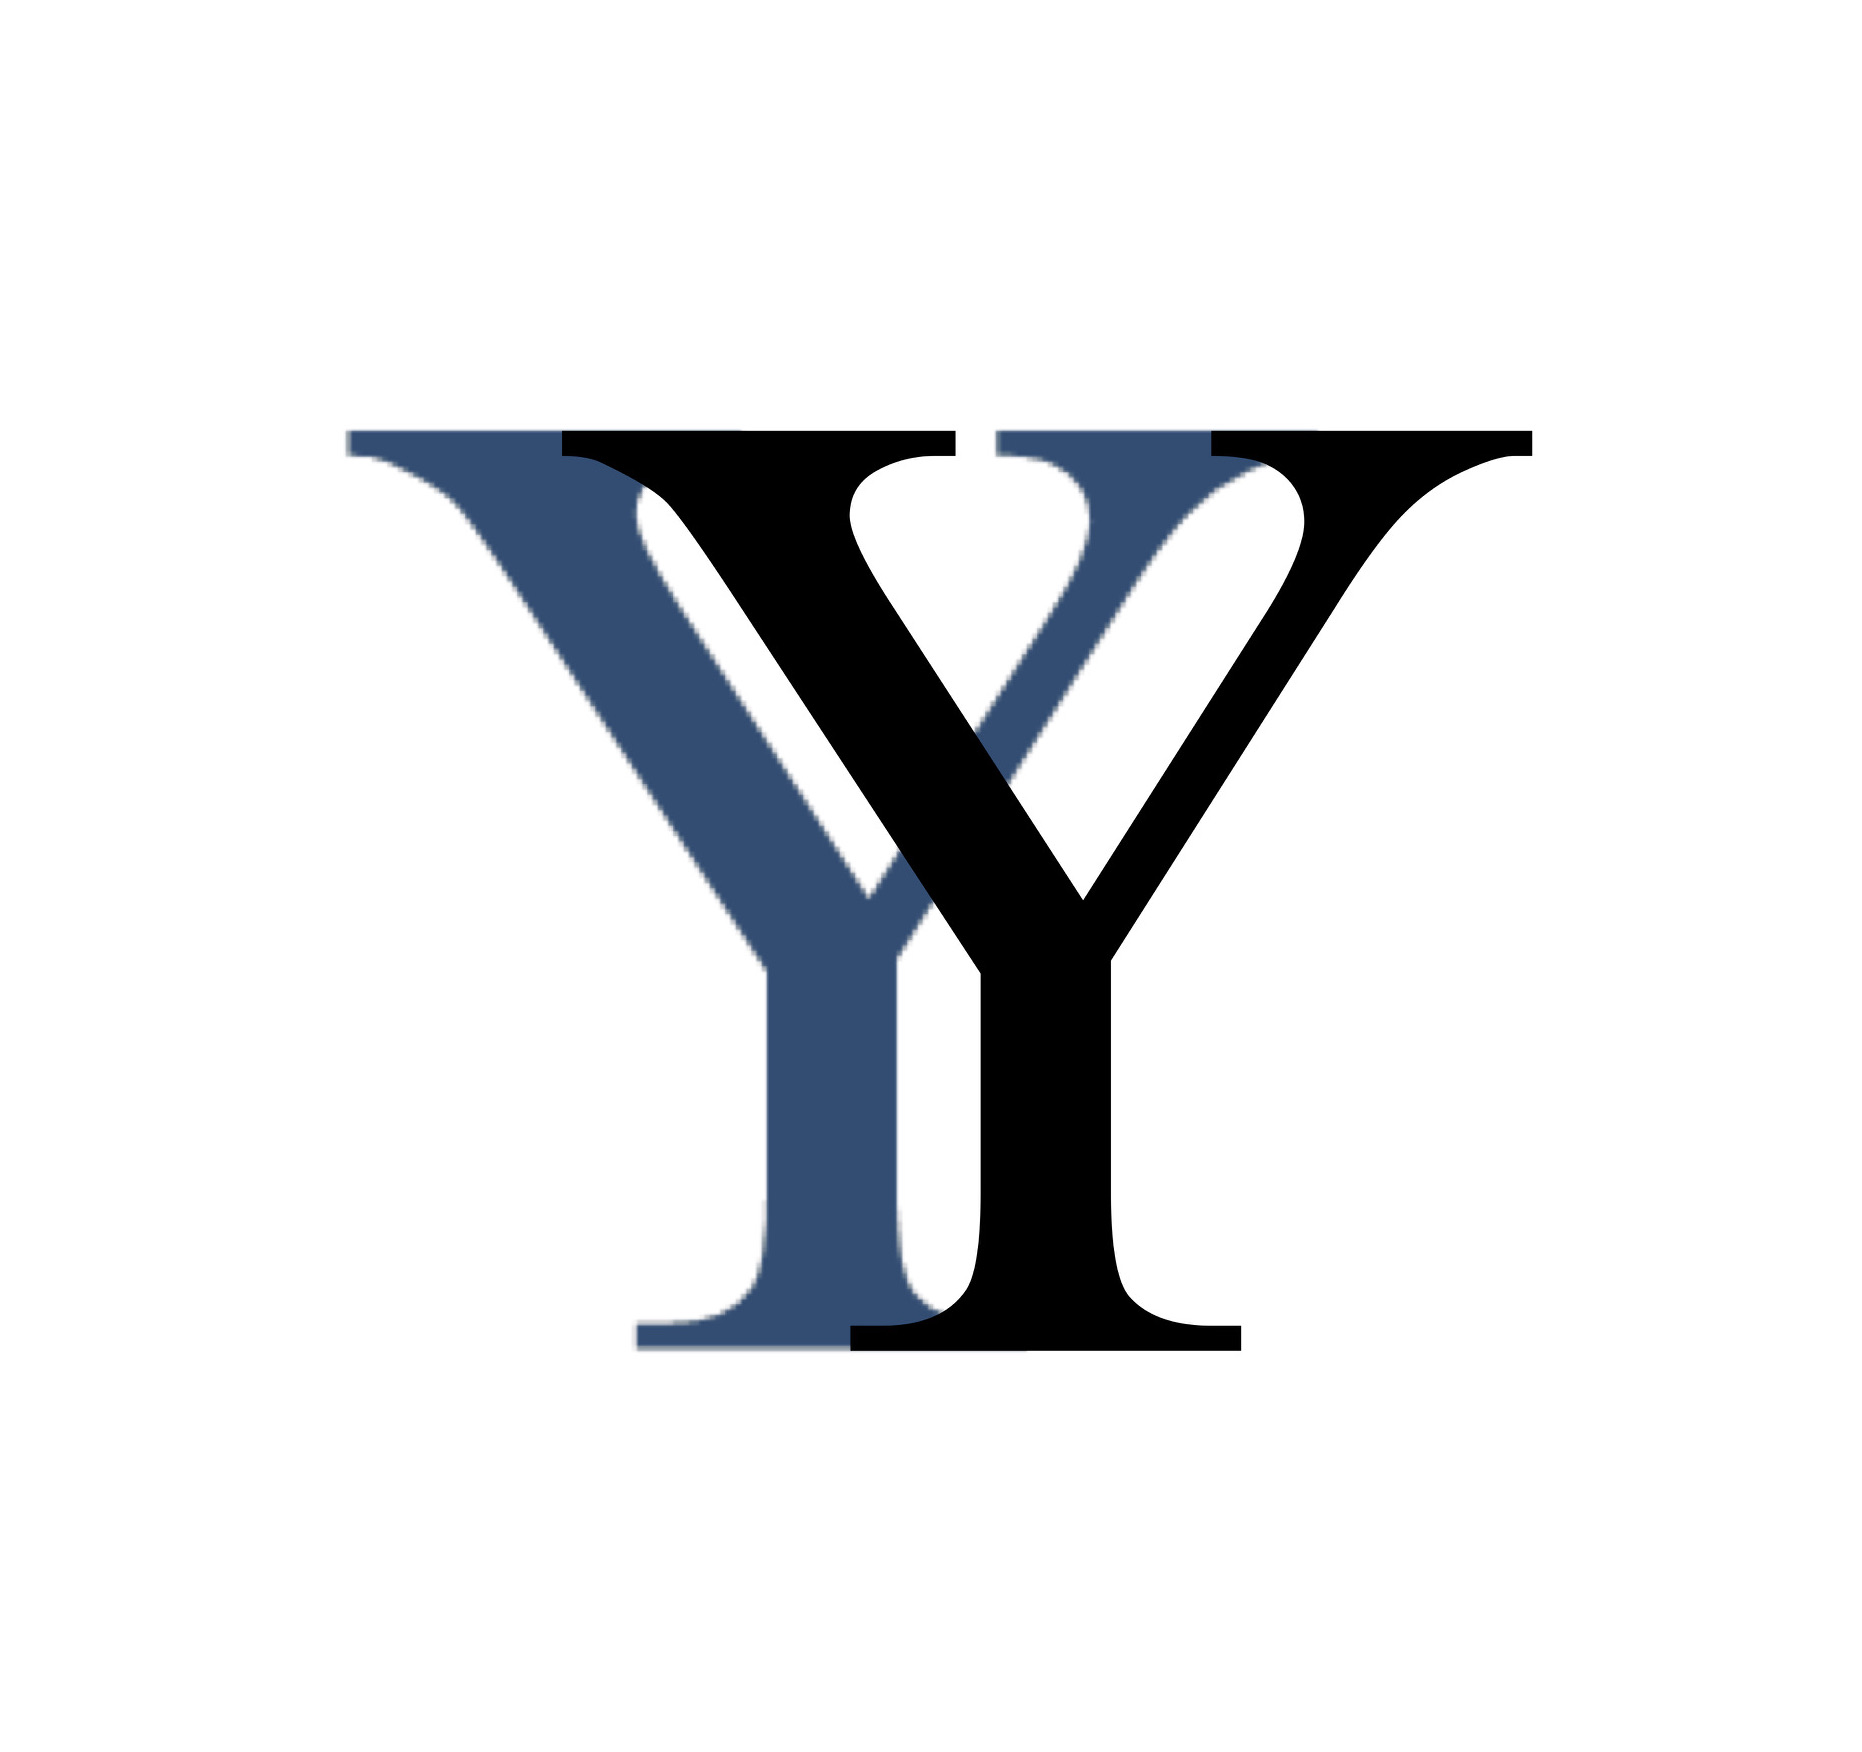 yalelayer logo full.jpg-2.jpeg